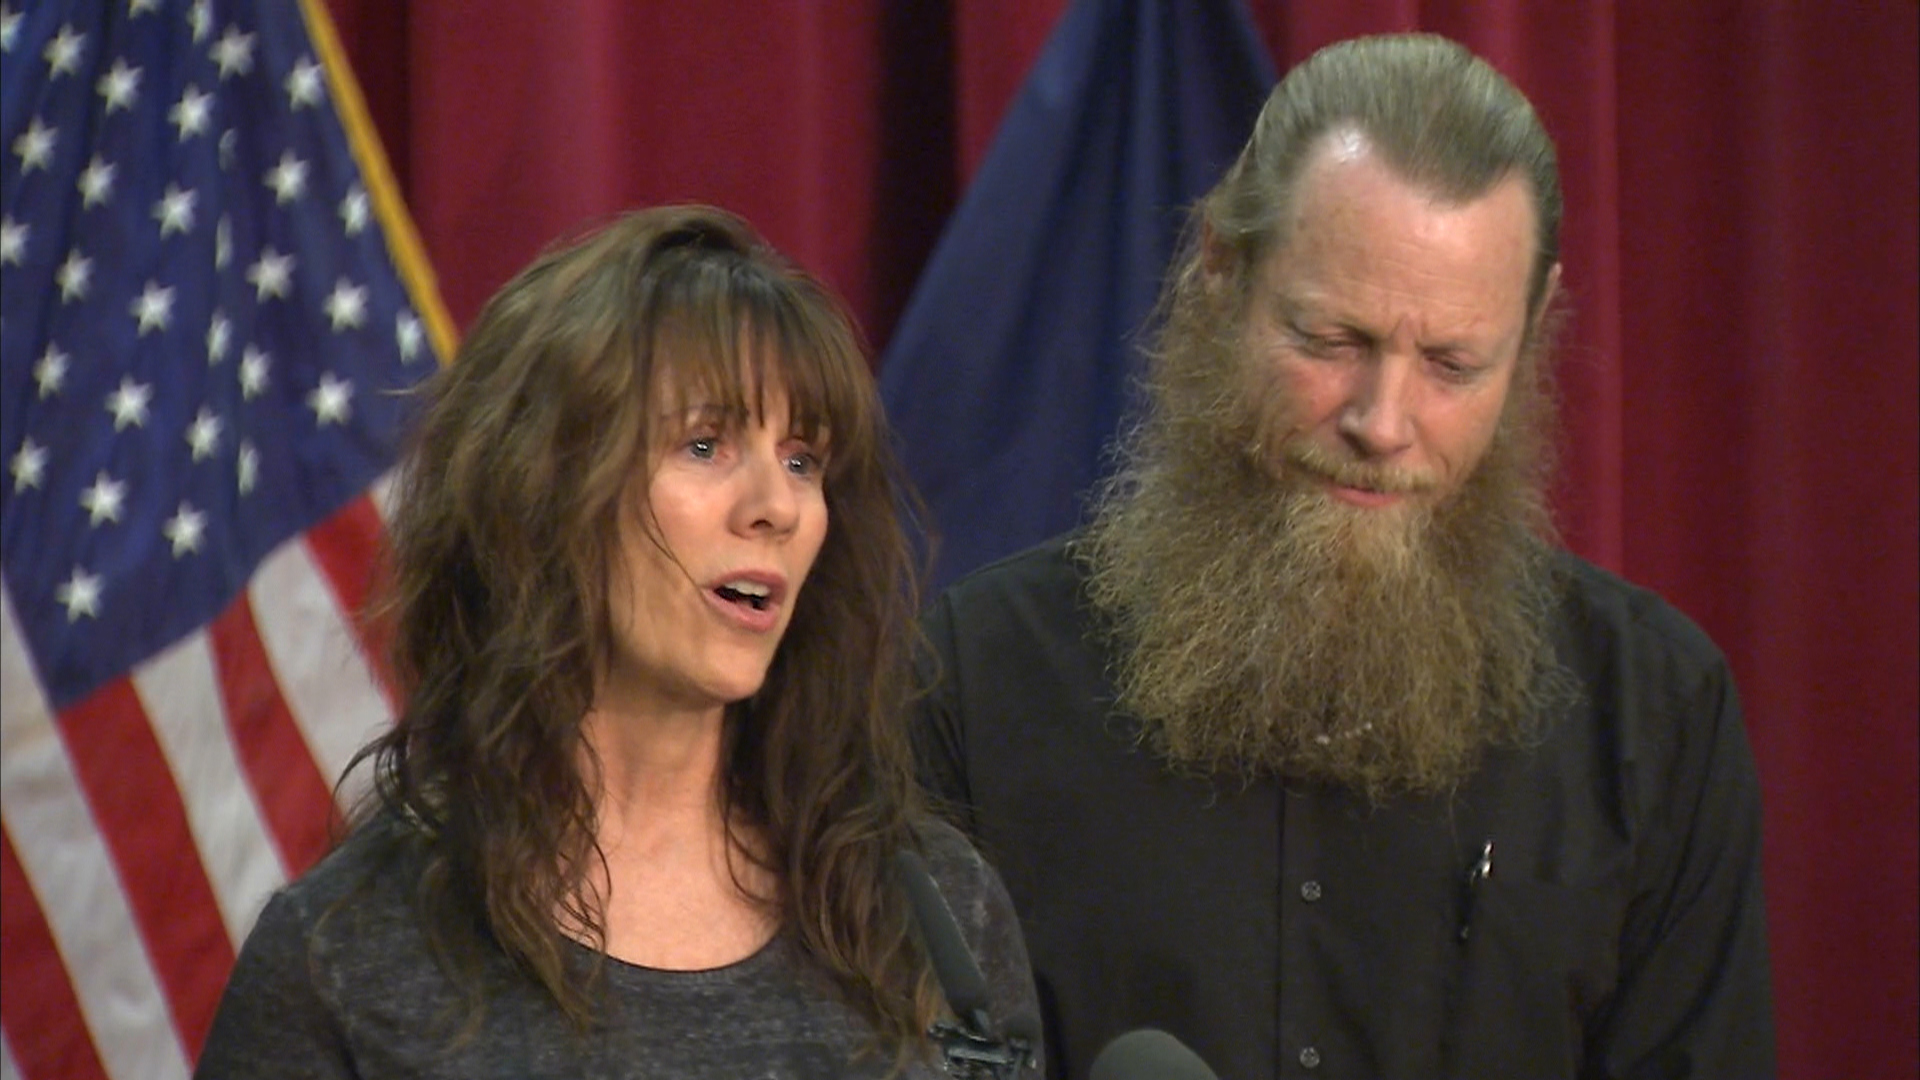 Bowe Bergdahl's Mom Reads Emotional Letter to Son - NBC News